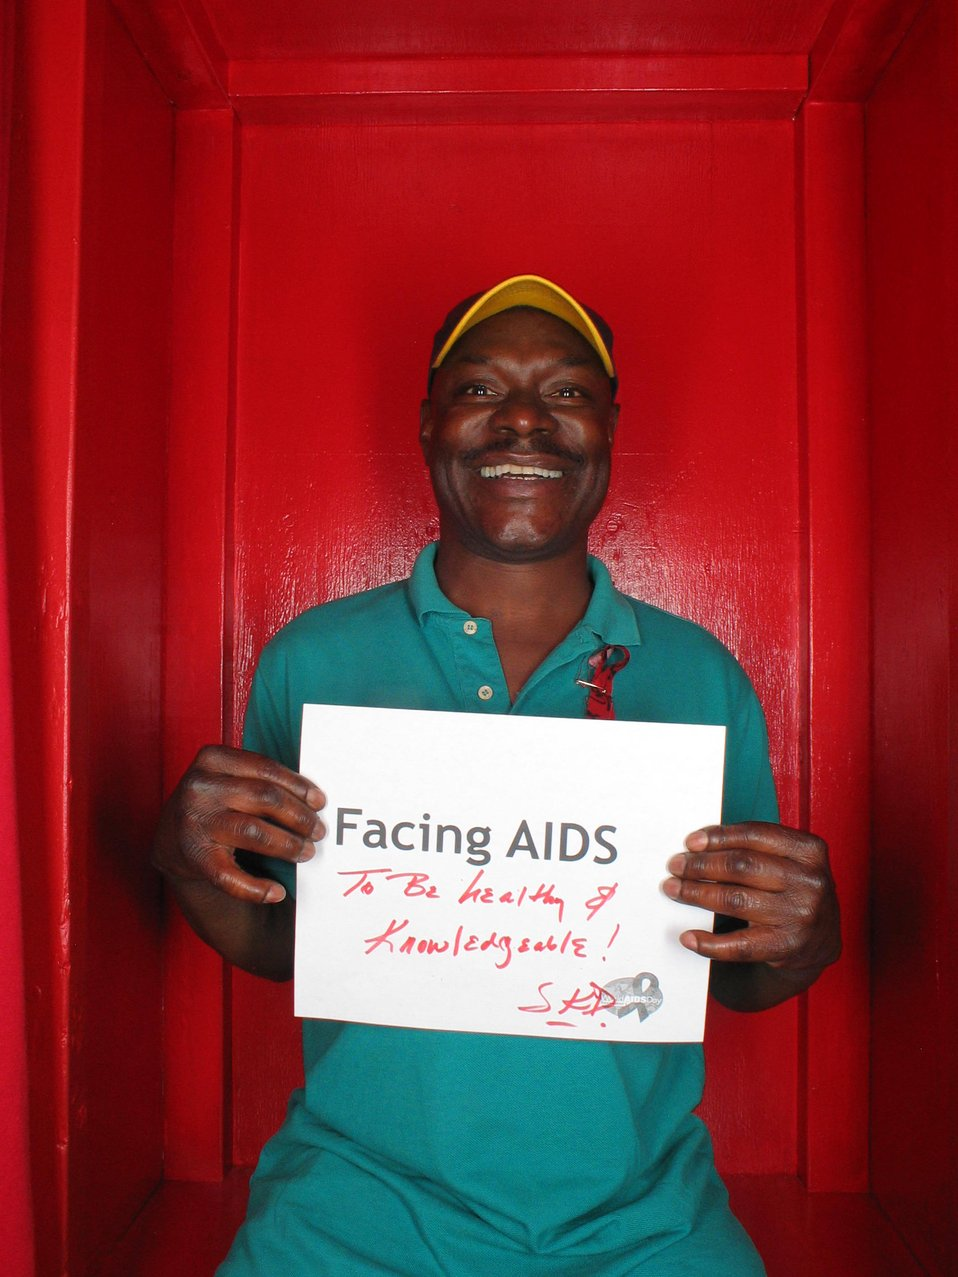 Facing AIDS to be healthy and knowledgable